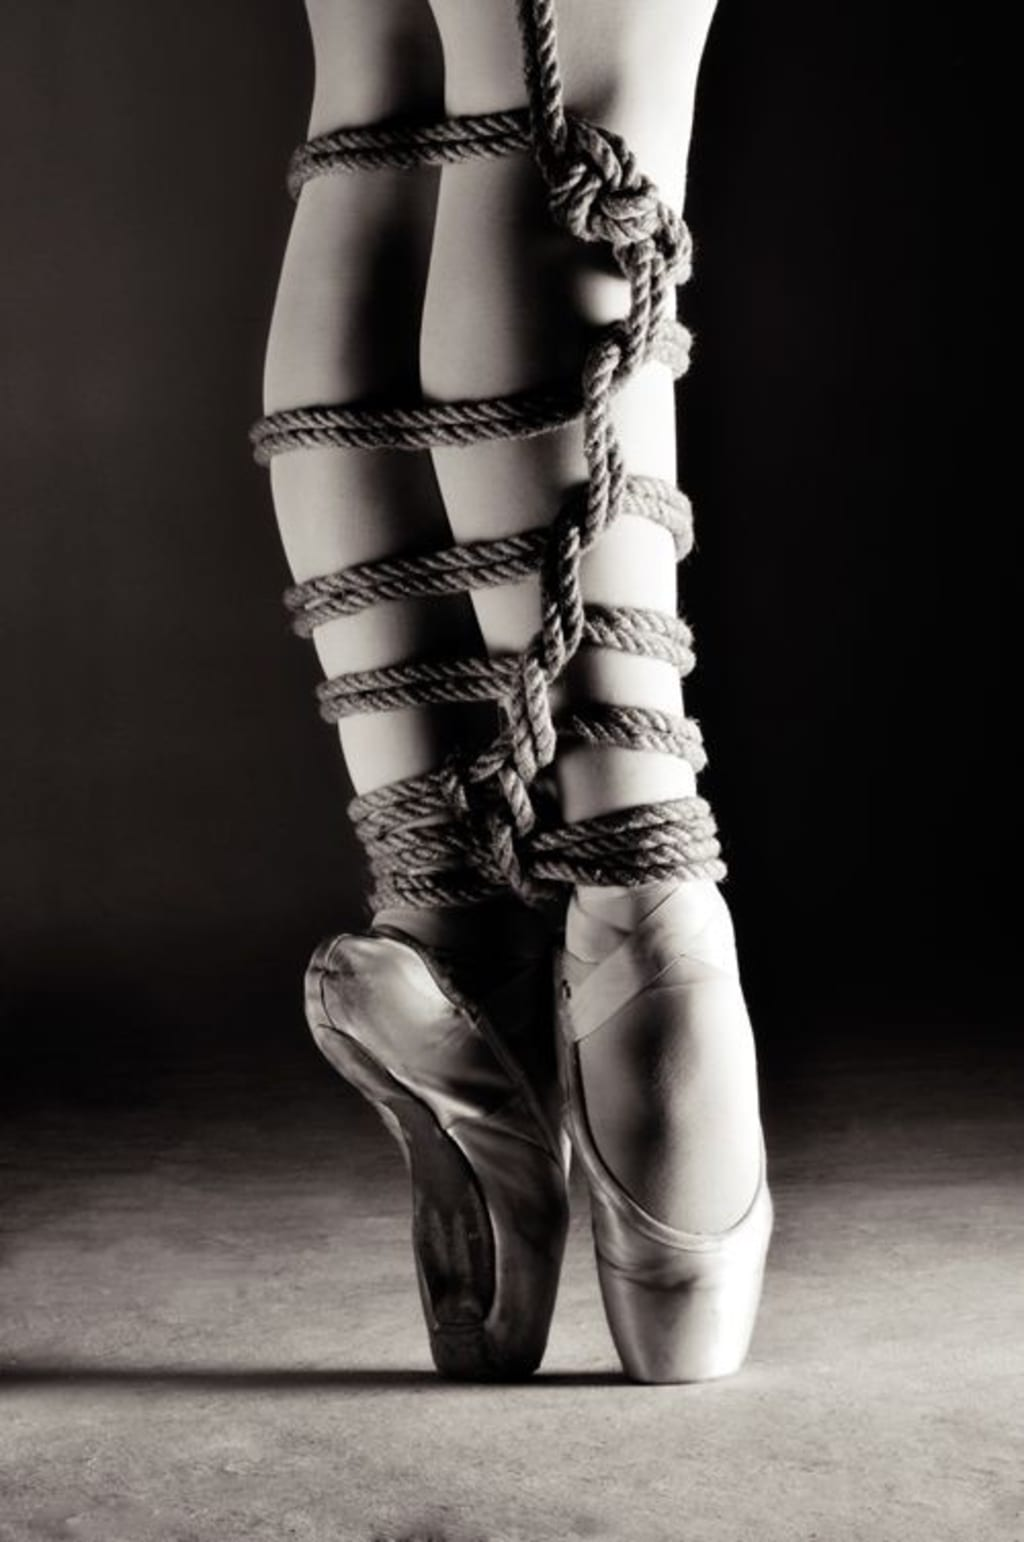 How I got into BDSM and what it means to me